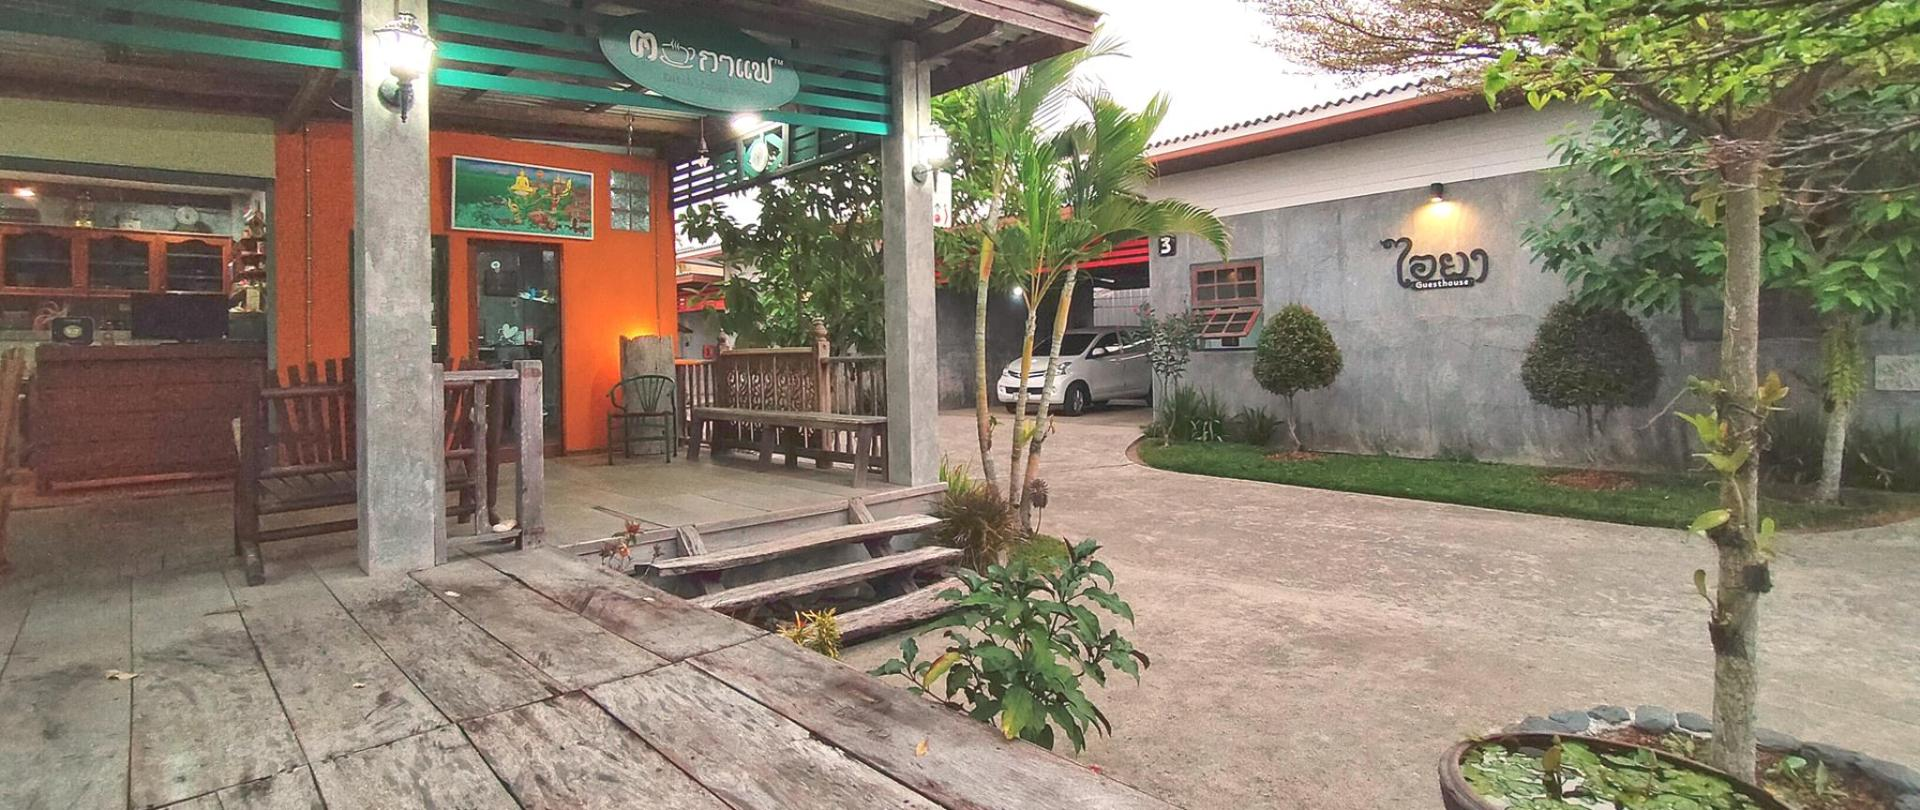 Communal-kitchen-Places-to-eat-Coffee-shop-garden-I-Ya-Guesthouse-Phayao.jpg